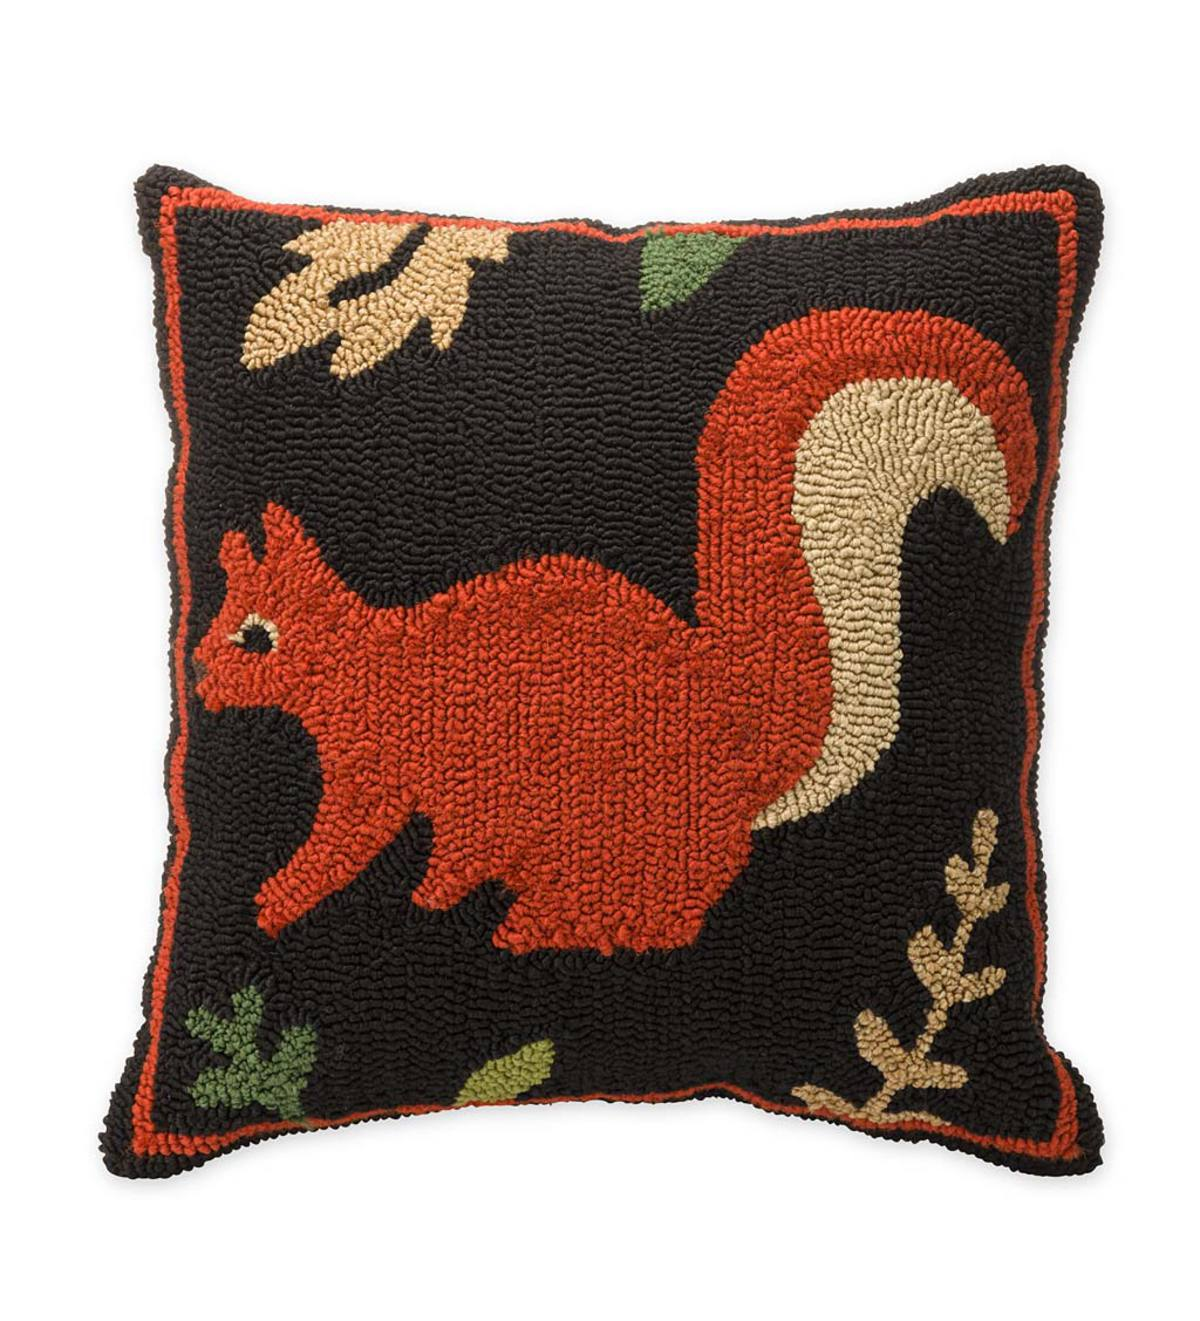 Indoor/Outdoor Woodland Hooked Pillow with Squirrel